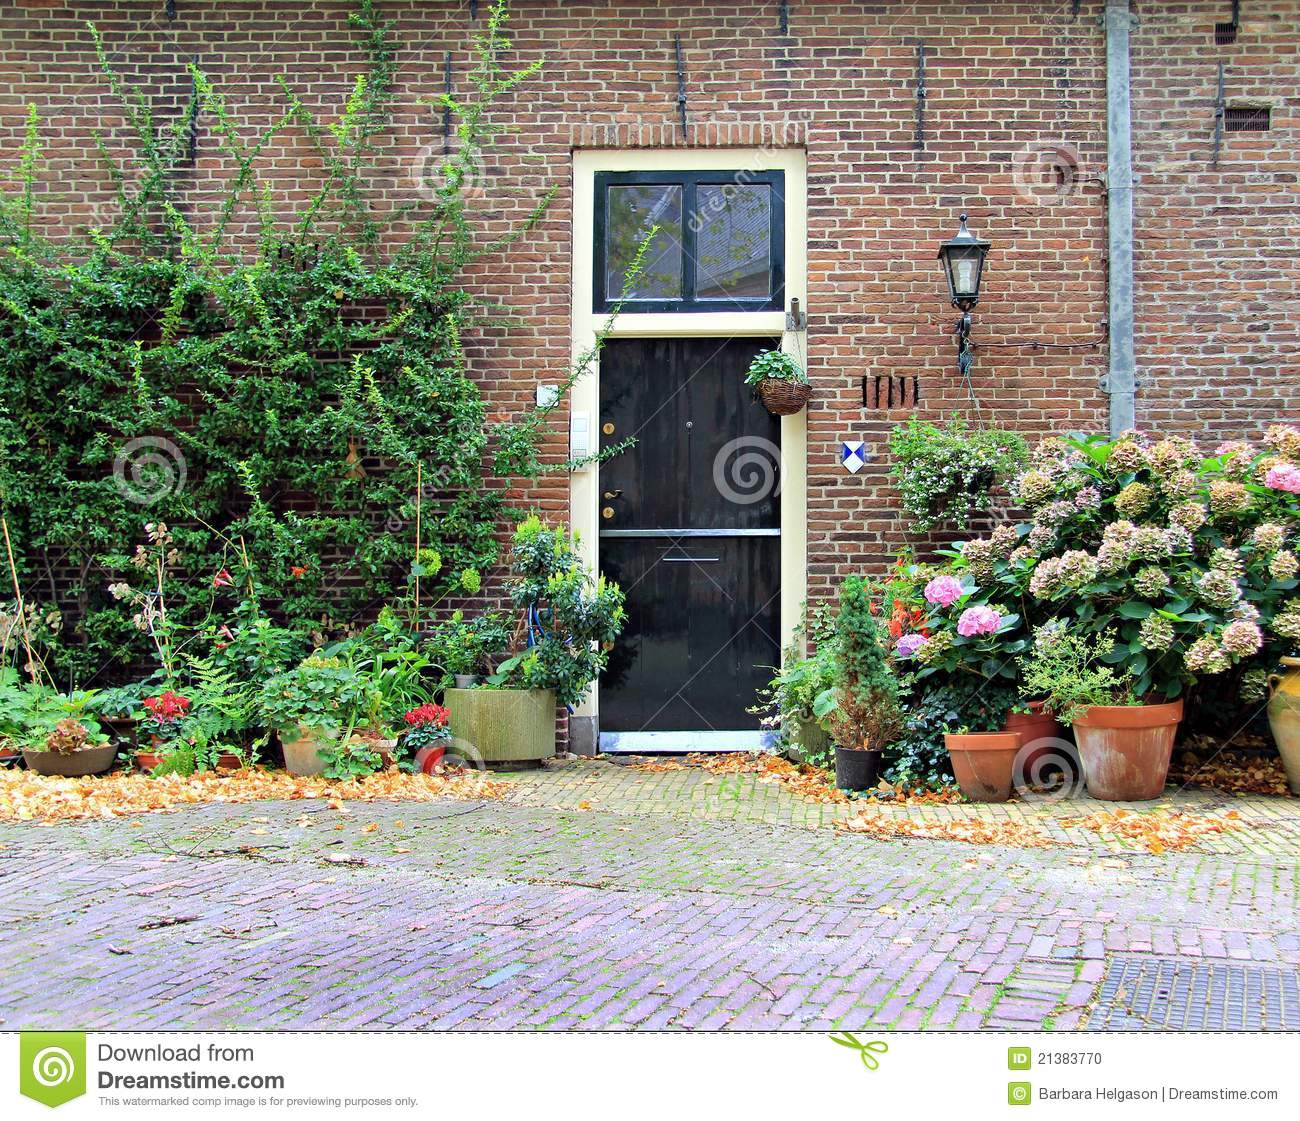 1121 #558546 Front Door Europe Stock Photo Image: 21383770 wallpaper European Front Doors 46251300